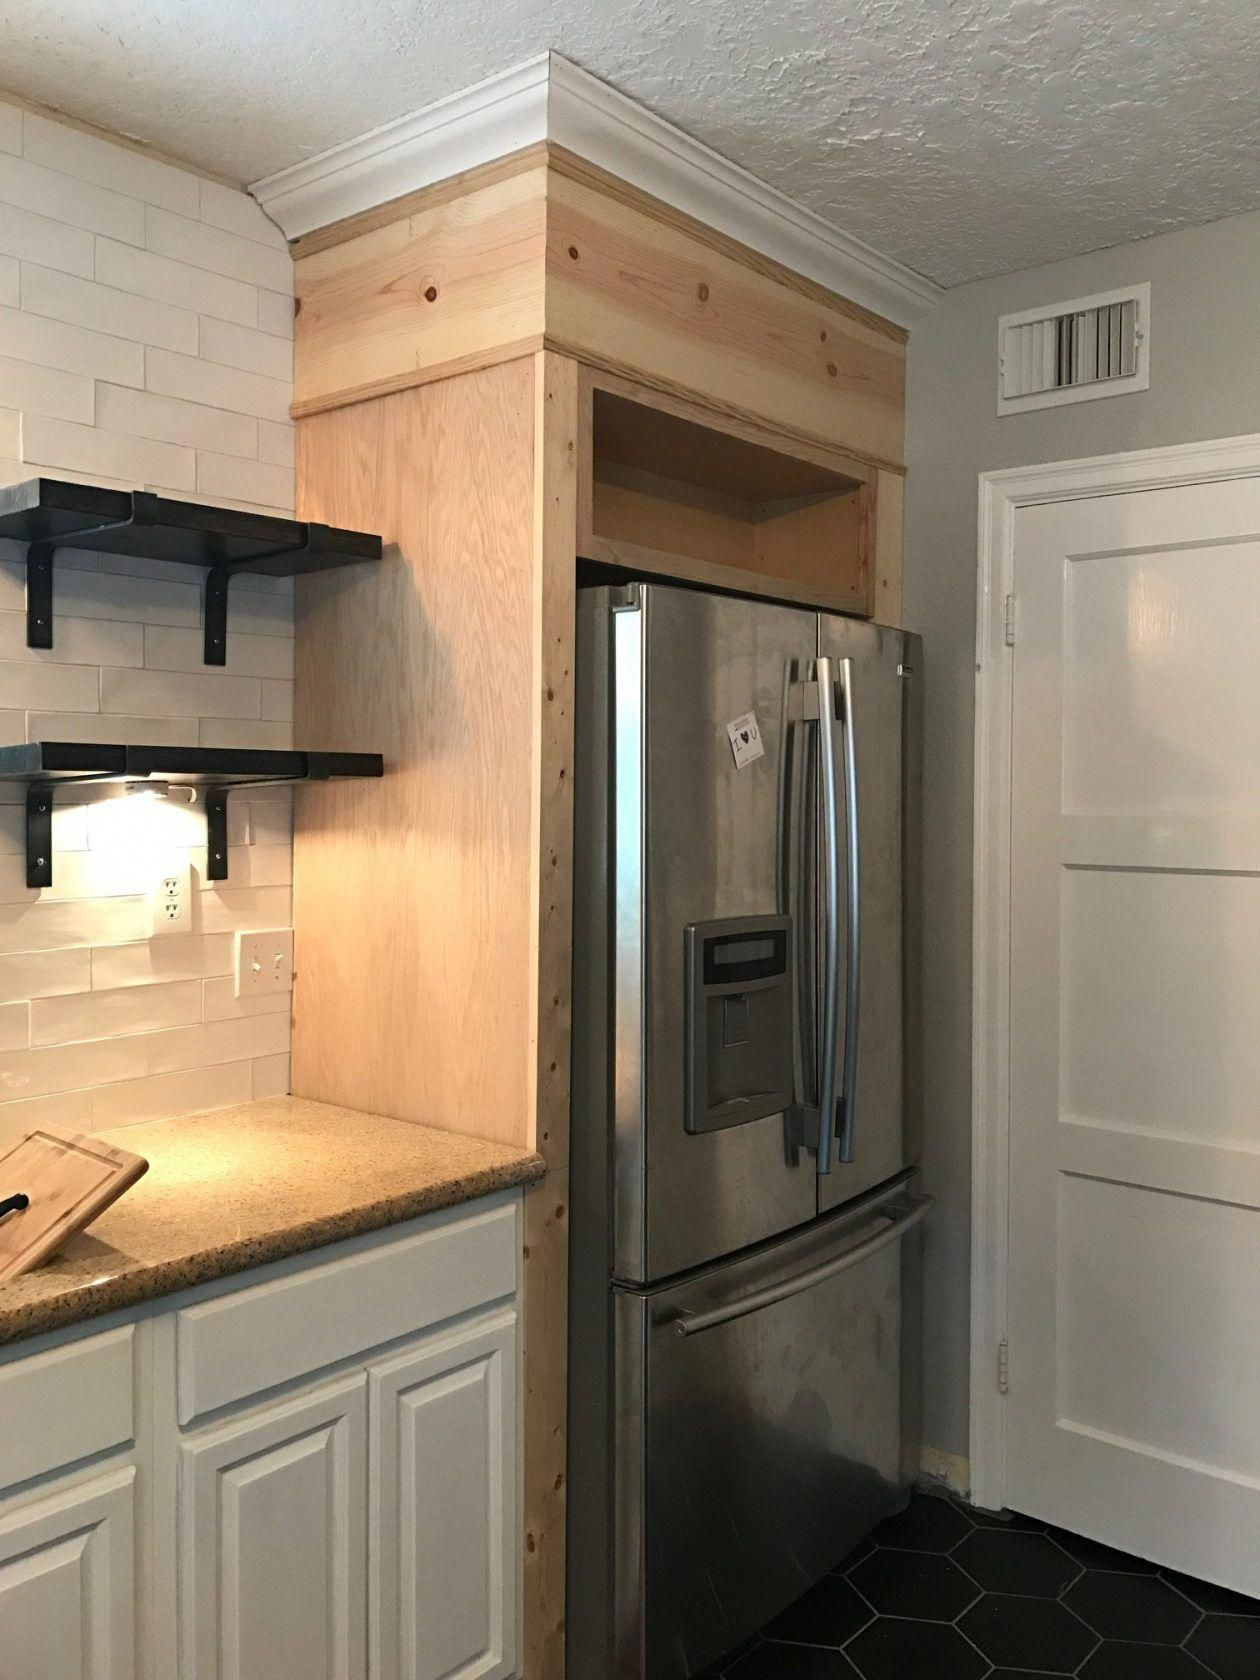 DIY fridge surround, kitchen renovation, refrigerator ...